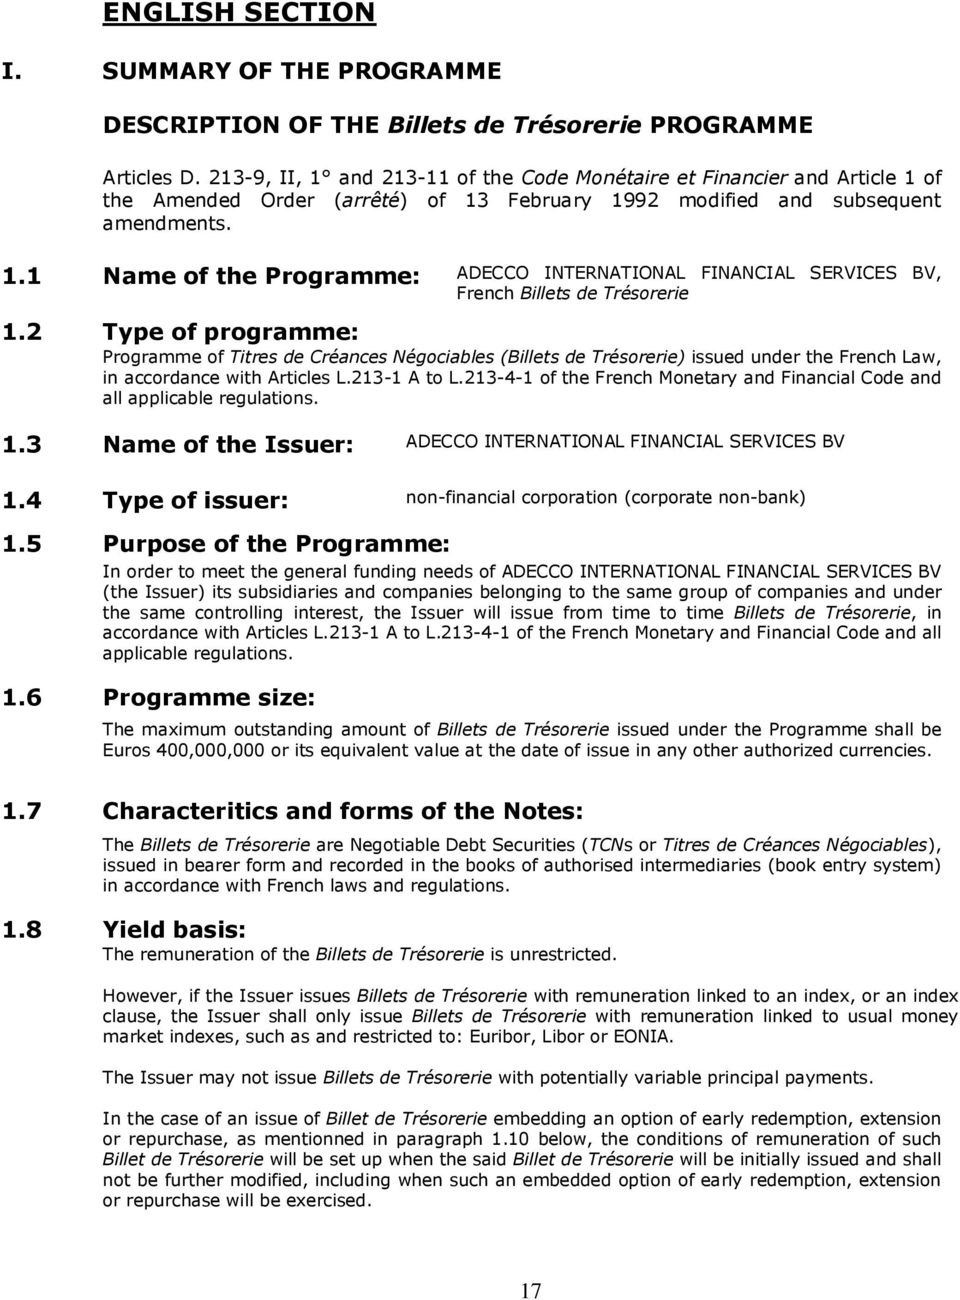 2 Type of programme: Programme of Titres de Créances Négociables (Billets de Trésorerie) issued under the French Law, in accordance with Articles L.213-1 A to L.